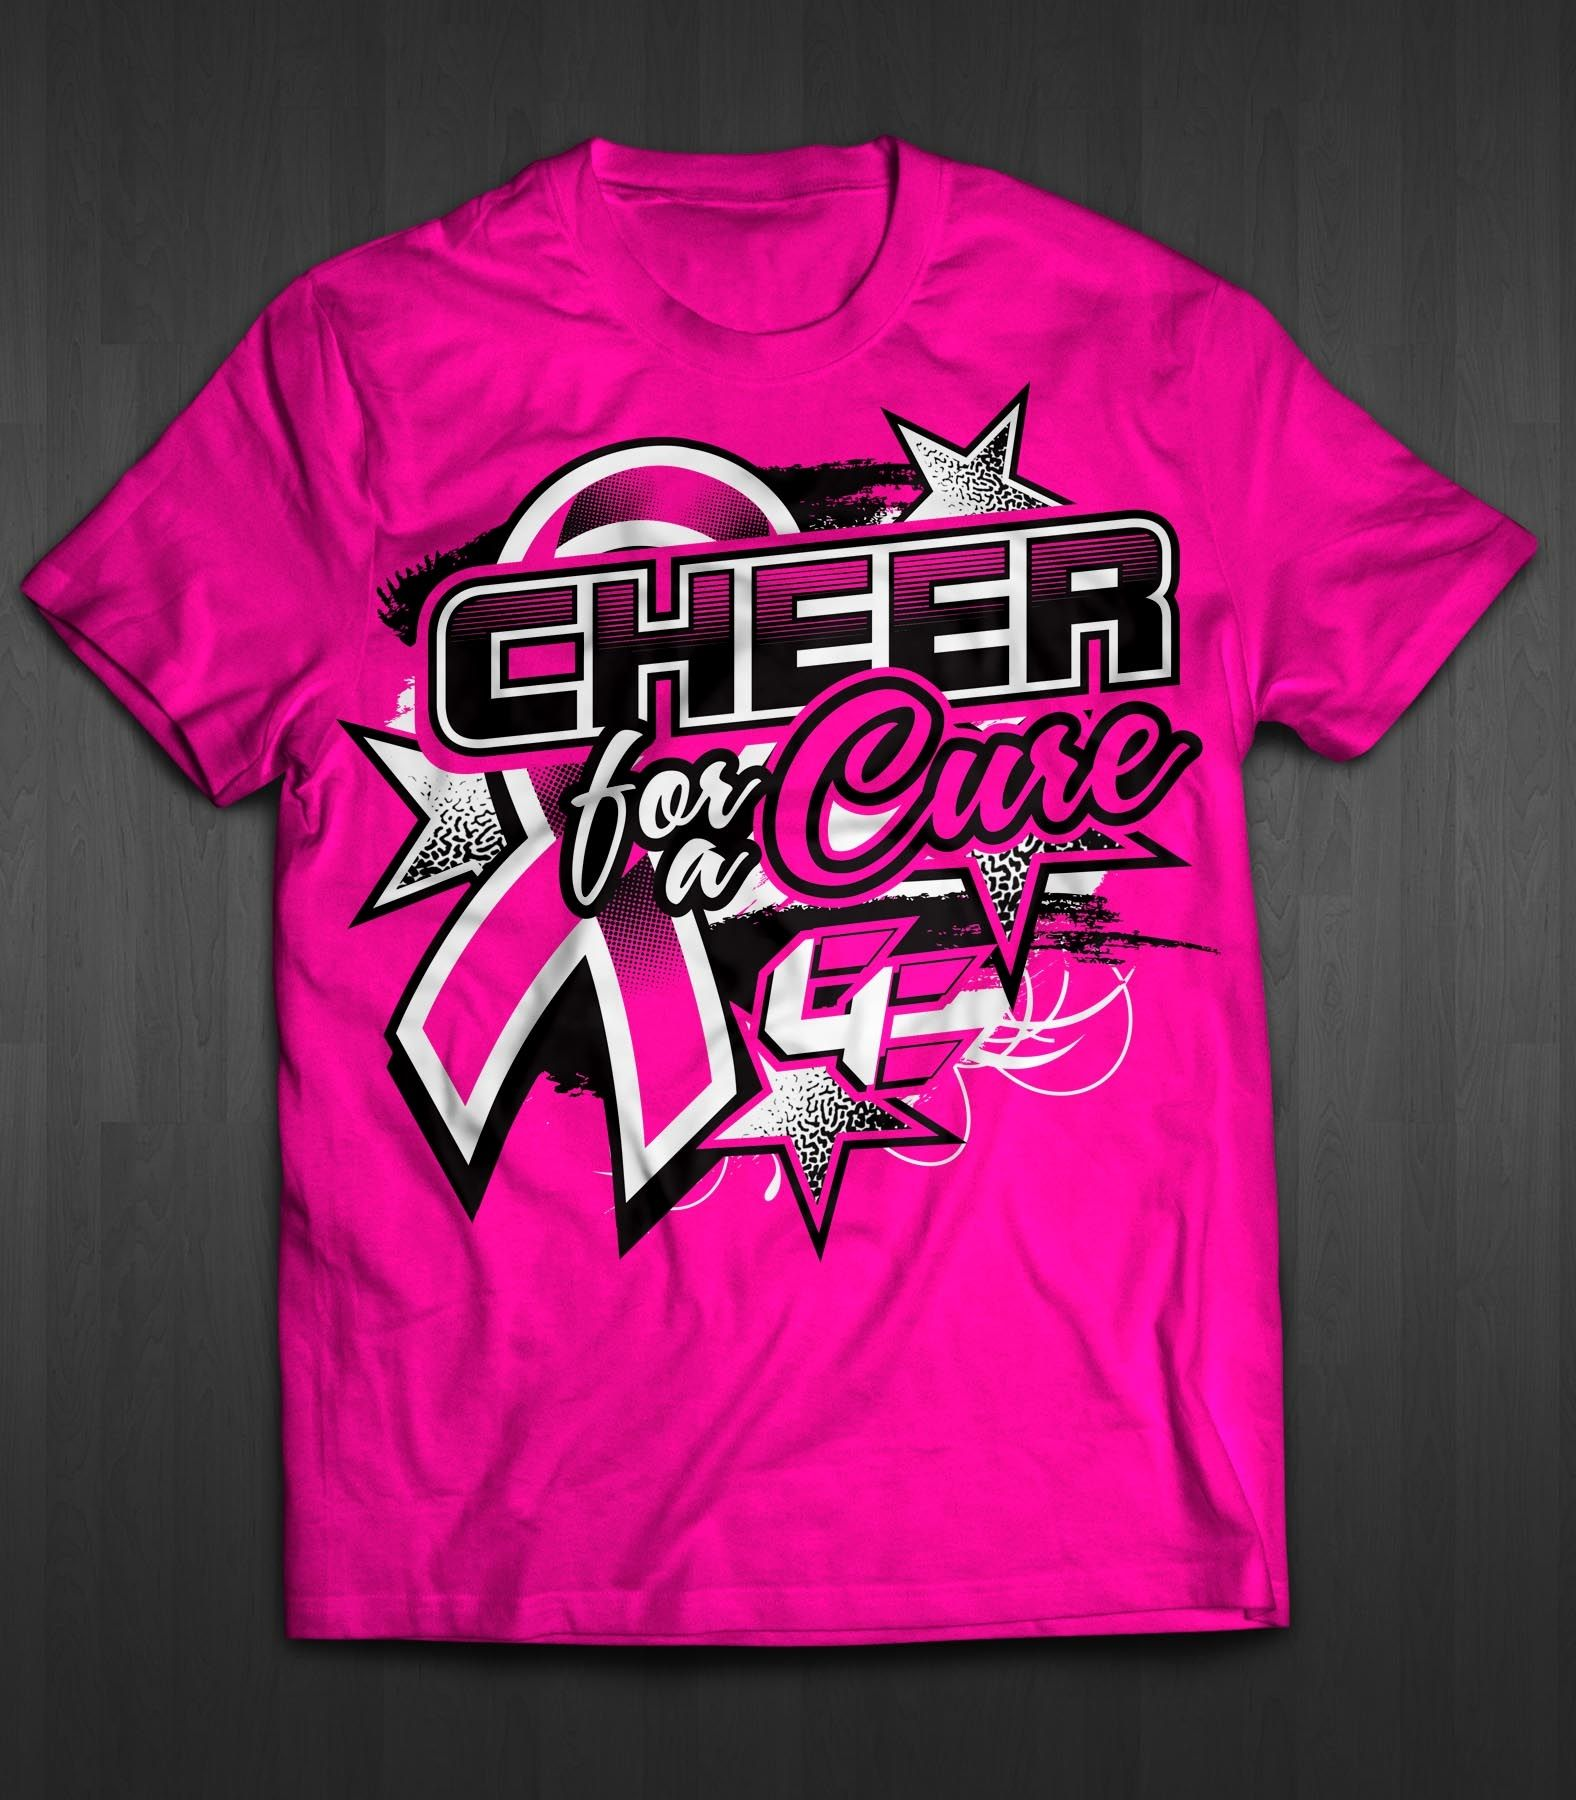 Design t shirt netball - Design 43 By Nickbanng Tshirt Design Cheer For A Cure 2016